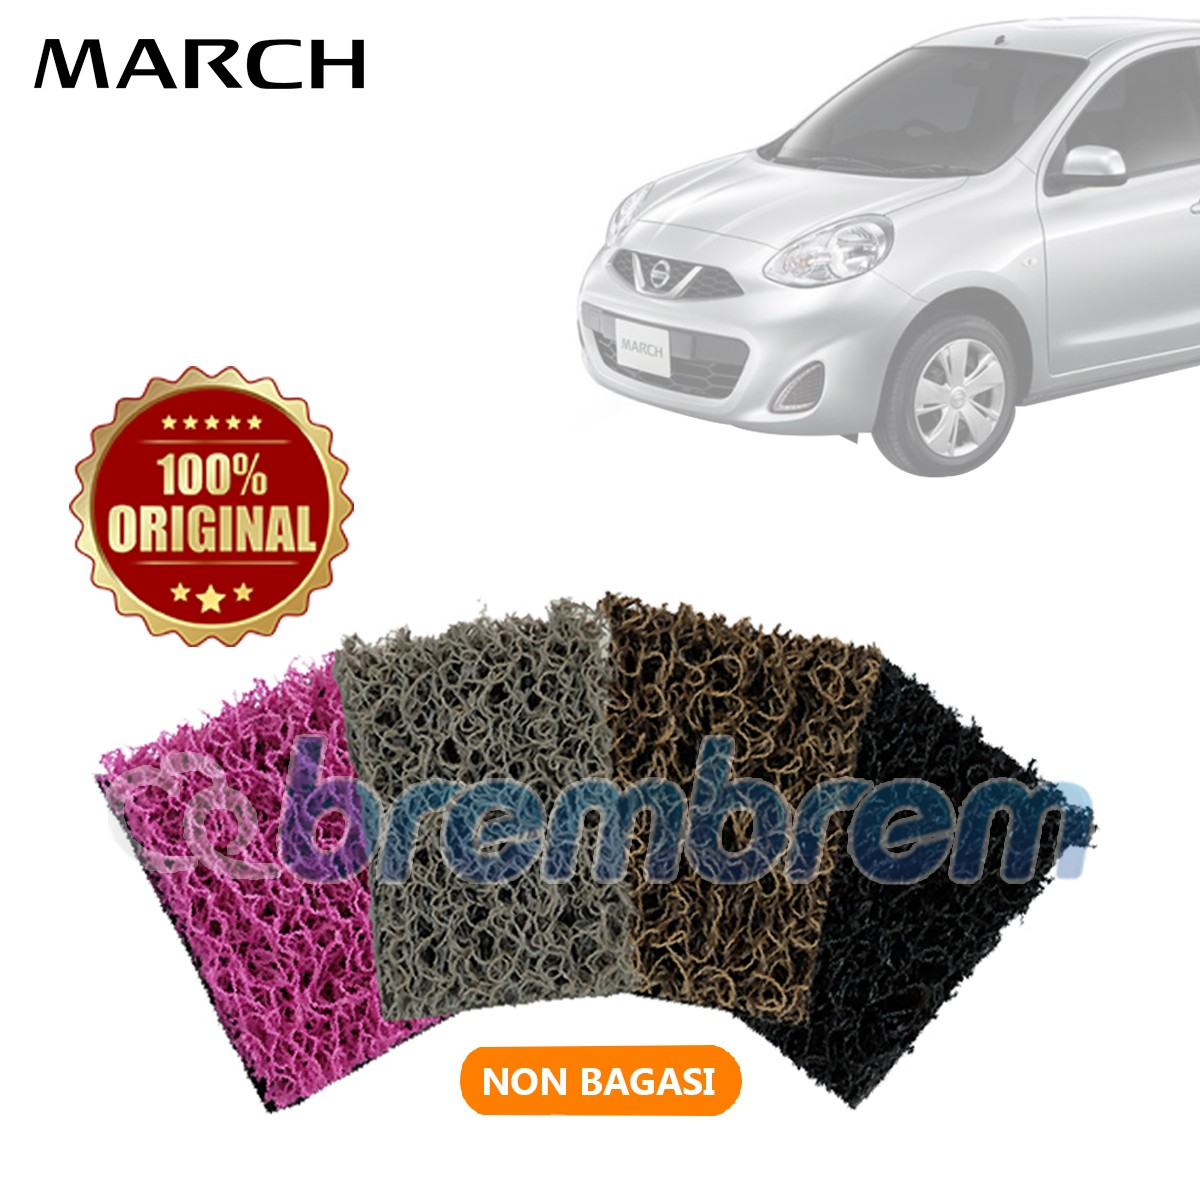 KARPET COMFORT PREMIUM NON BAGASI NISSAN ALL NEW MARCH